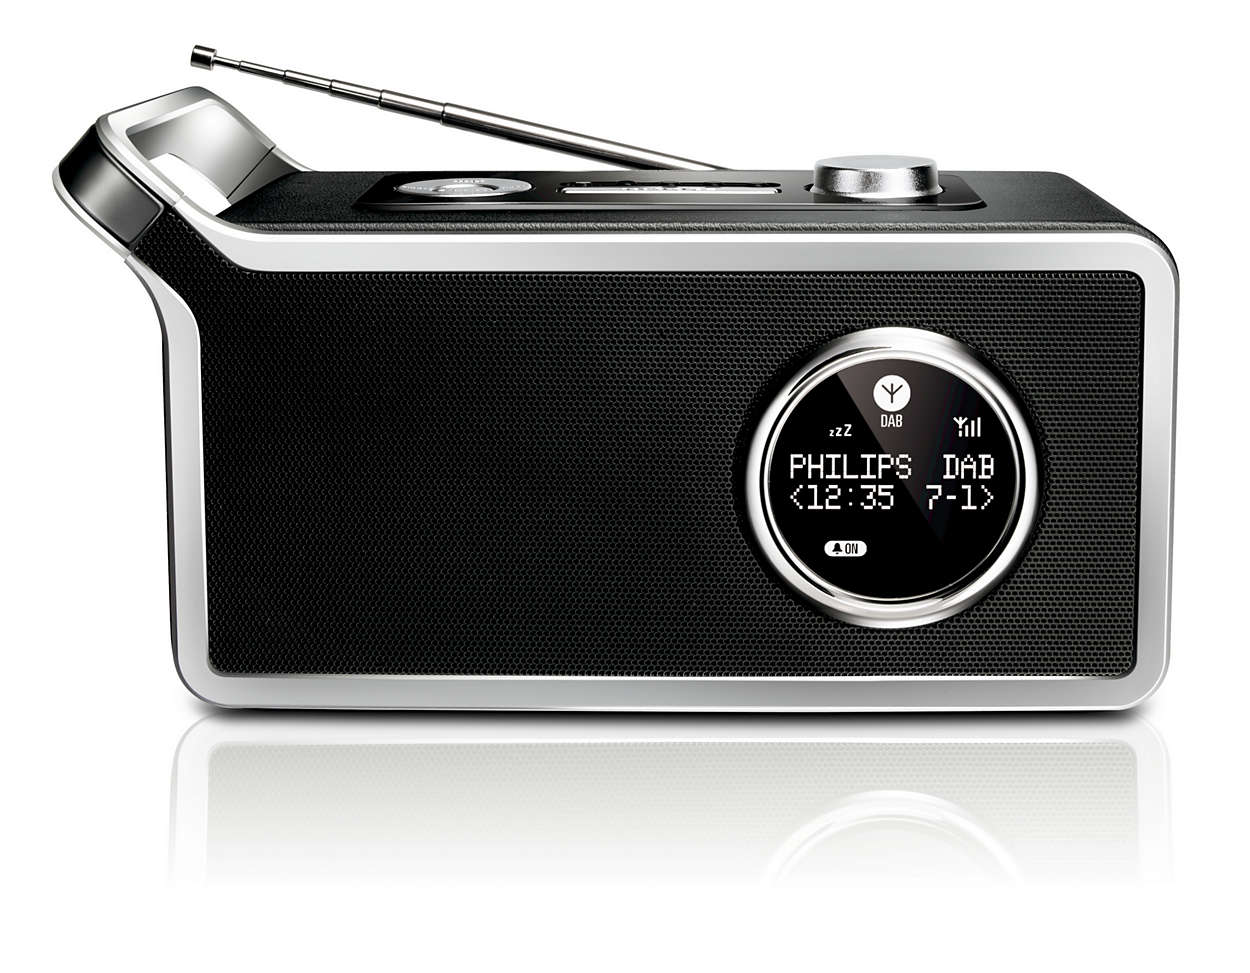 Digital radio with crystal clear sound quality